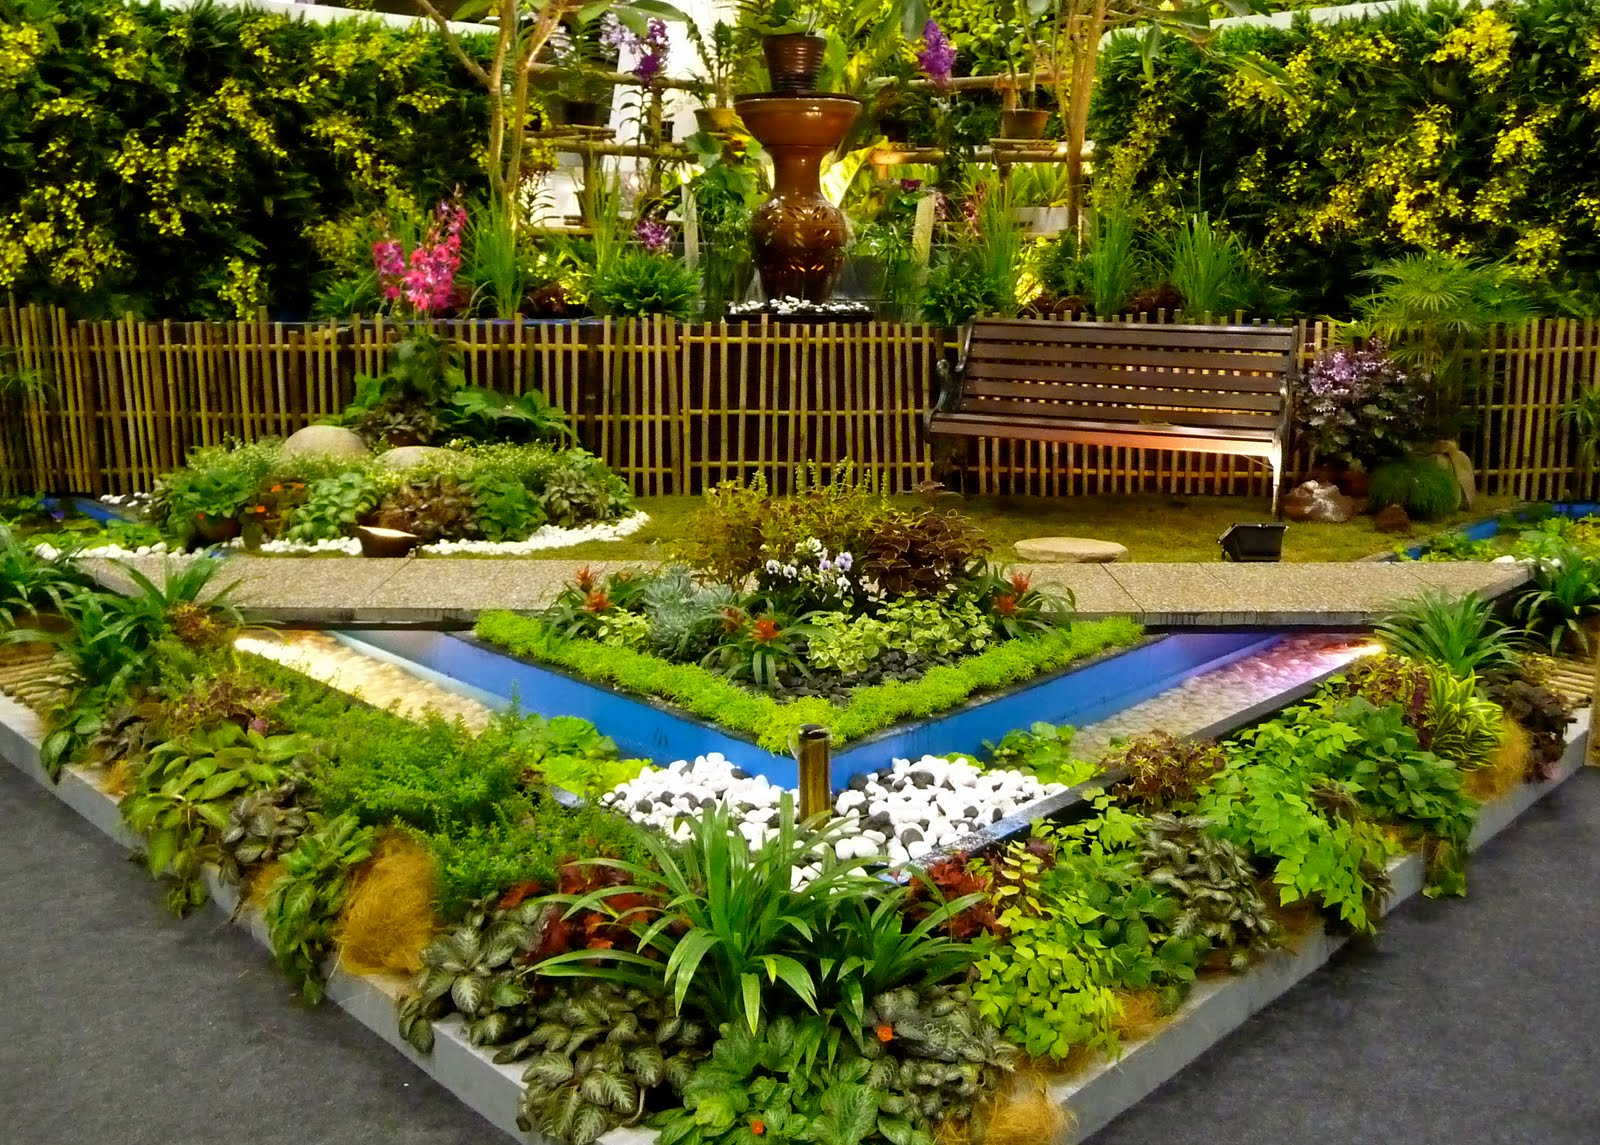 Good home ideas asia 39 s best garden and flower show returns for Best home garden ideas